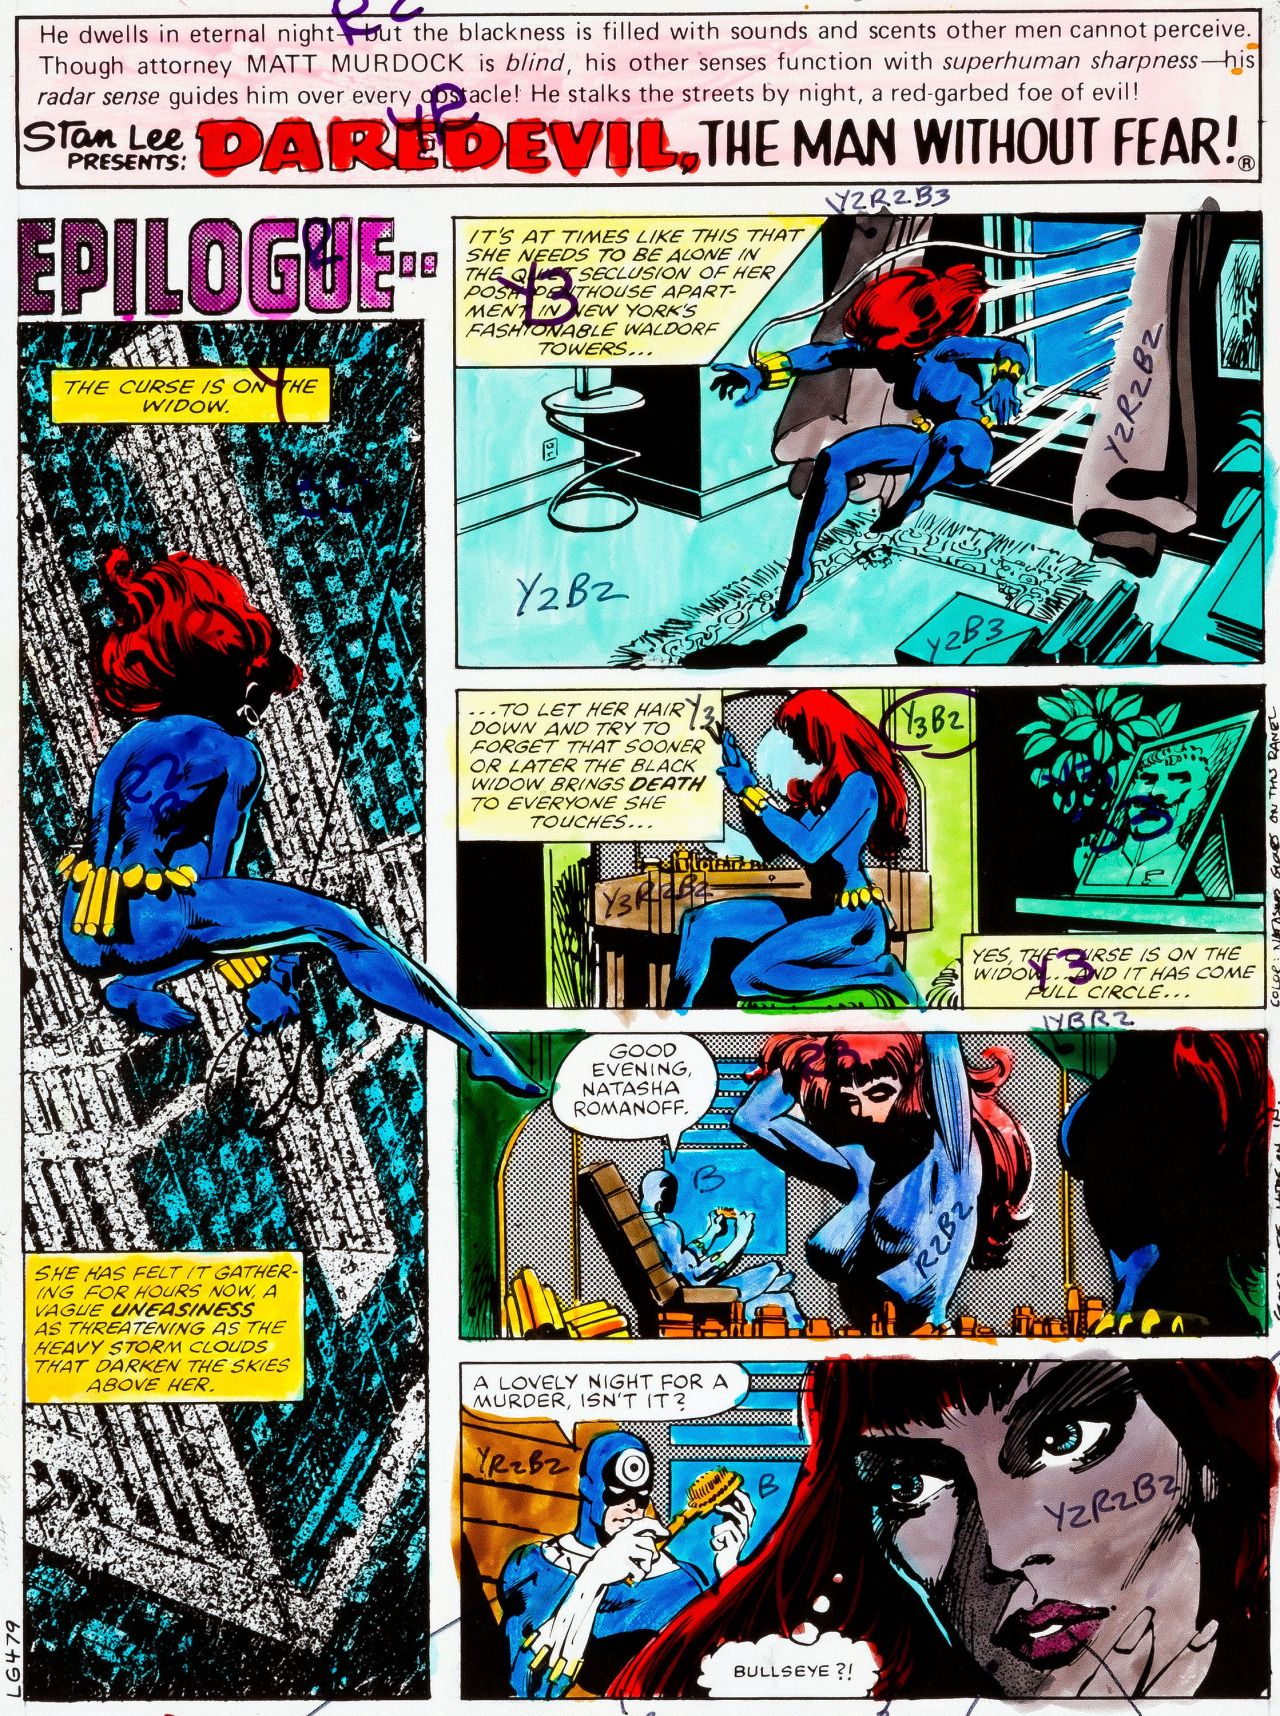 Original hand-painted color guides by Frank Miller (pencils), Klaus Janson (inks) and Glynis Wein (colors) from Daredevil #160 (pages 1-3 and 15-16), published by Marvel Comics, September 1979.